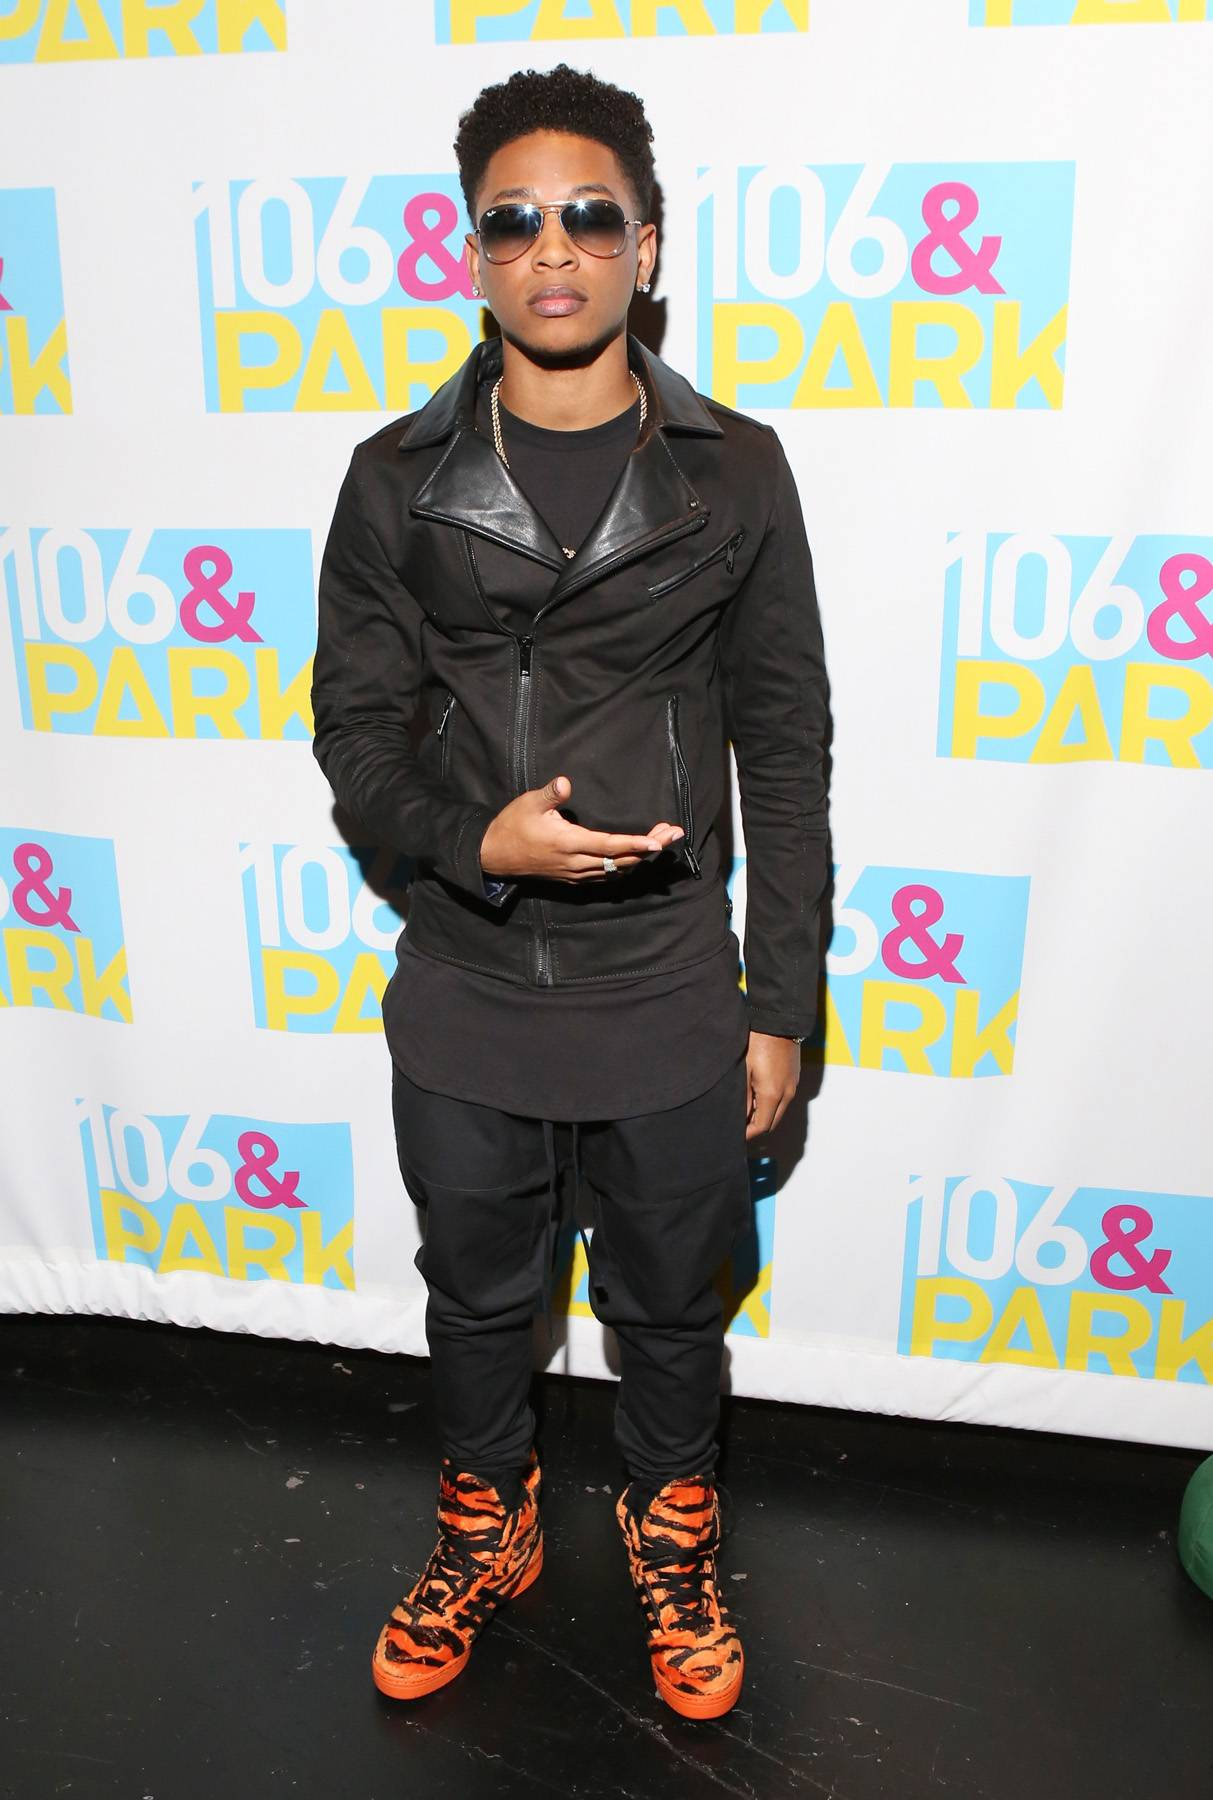 Jacob Latimore - September 19, 2014 - Known for his singing abilities, Jacob Latimore is now a rising big screen heartthrob. He talked about his role in new film The Maze Runner and how he's met a few bros for life. Watch a clip now! (Photo: Bennett Raglin/BET/Getty Images)